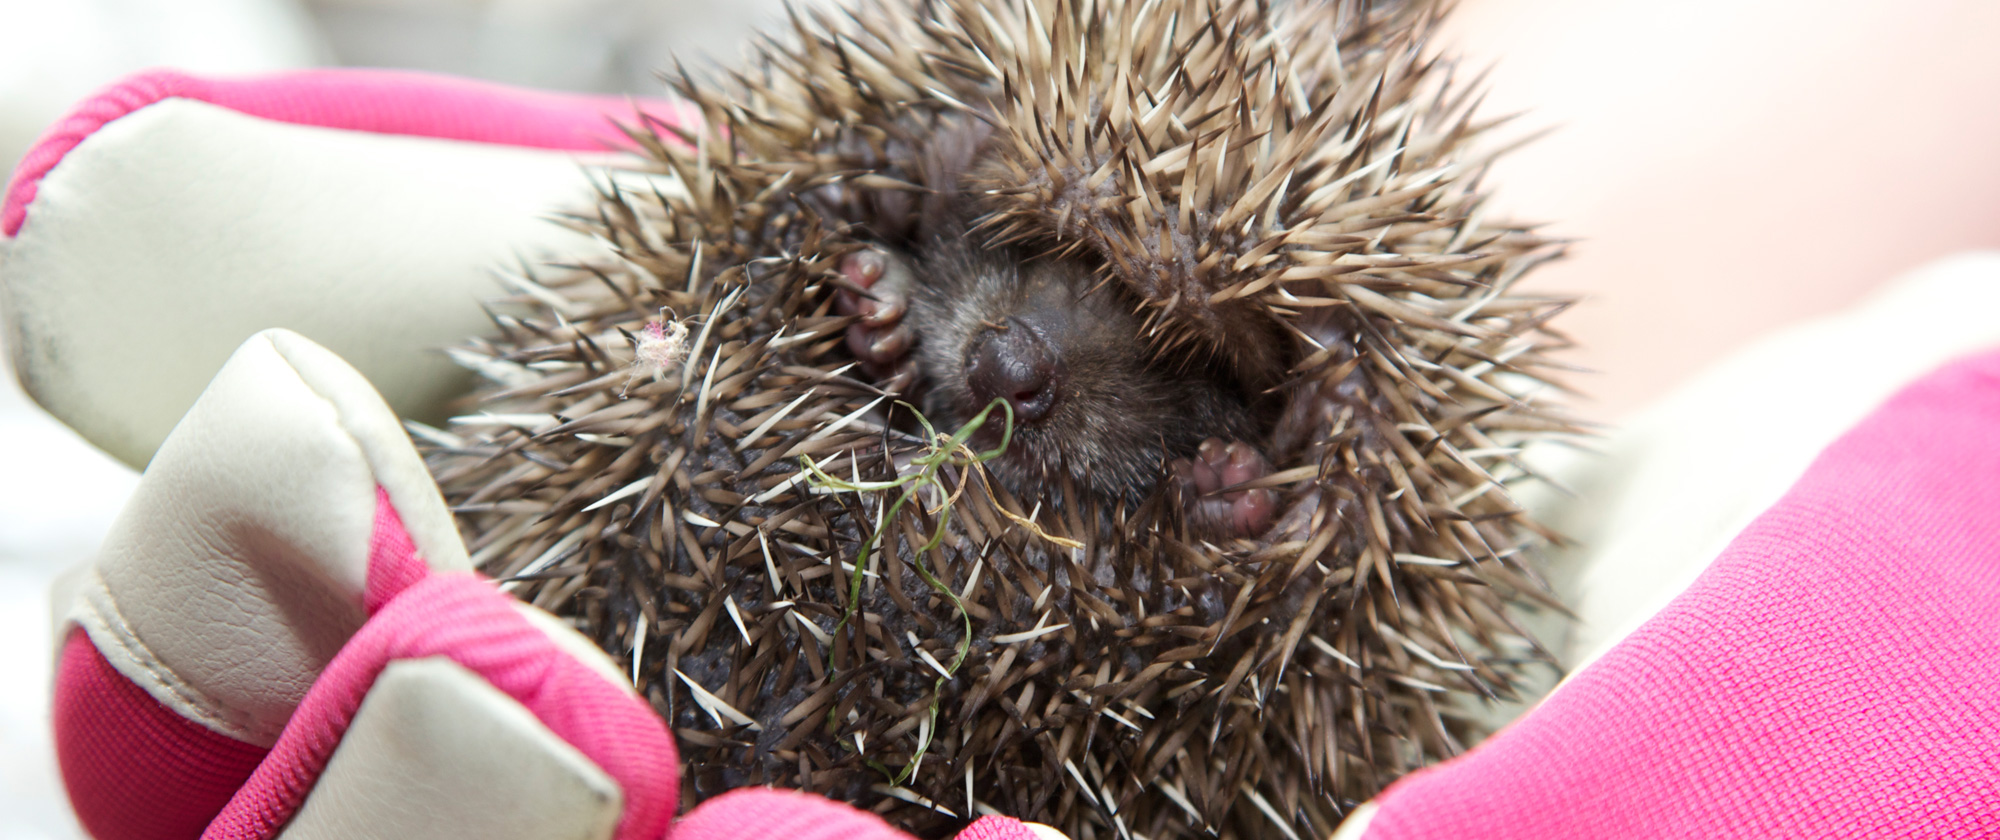 We rescue hedgehogs